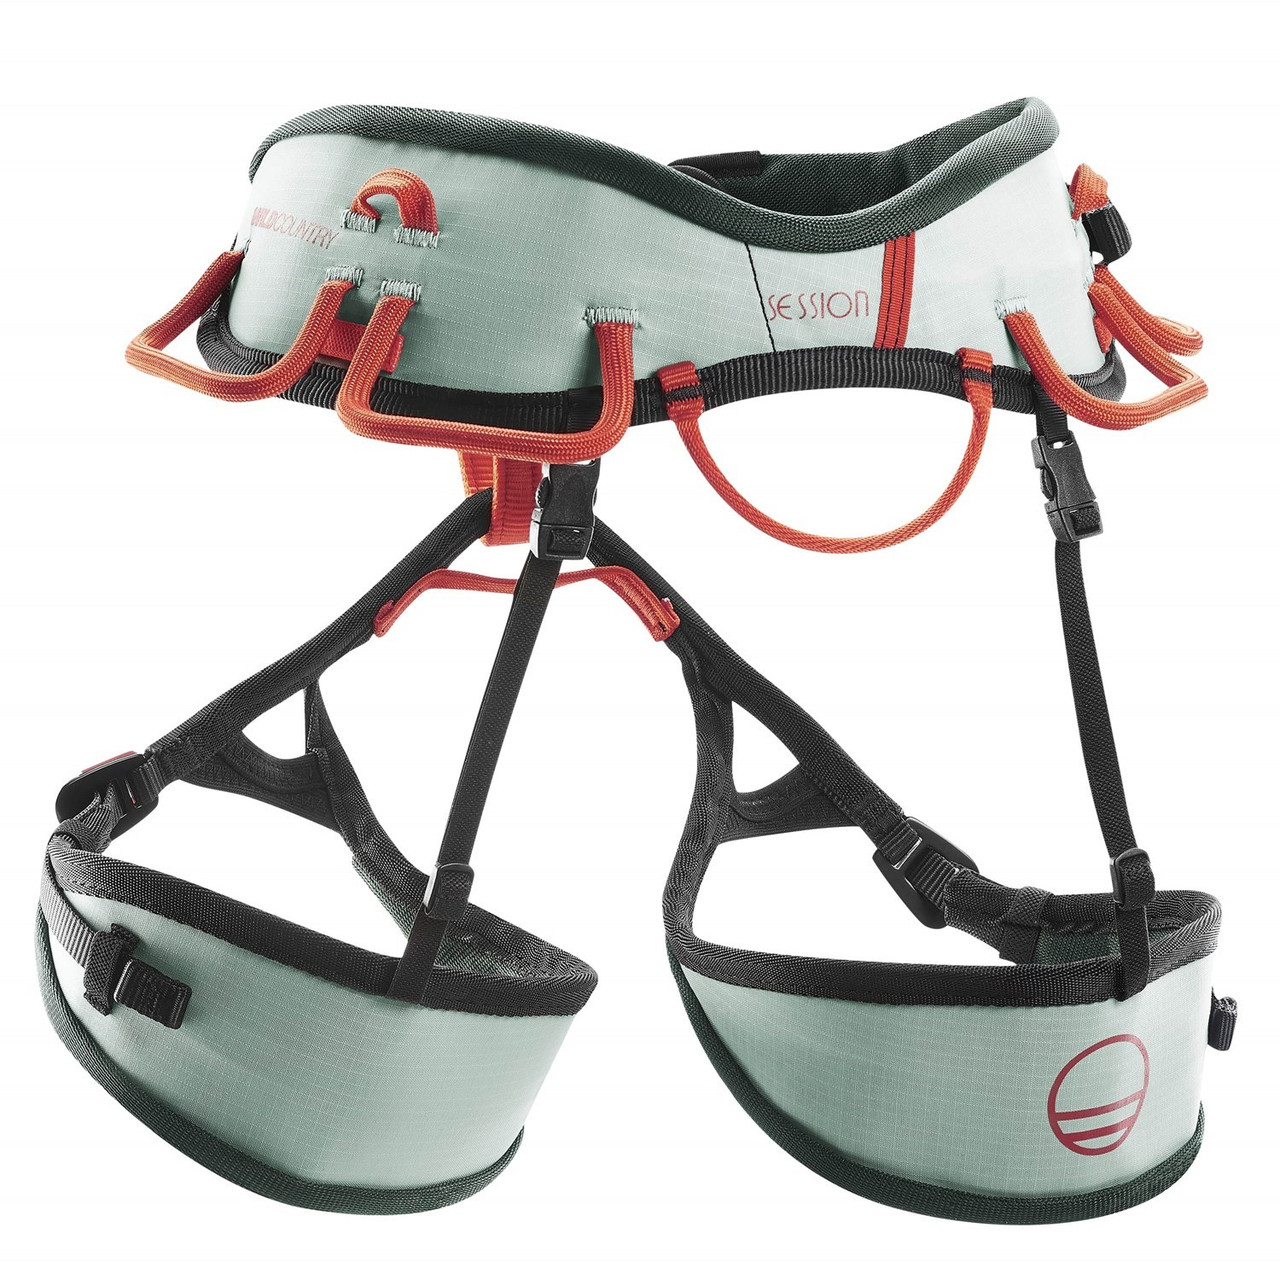 Wild Country Session - Women's Harness Online @mountainmailorder - Back